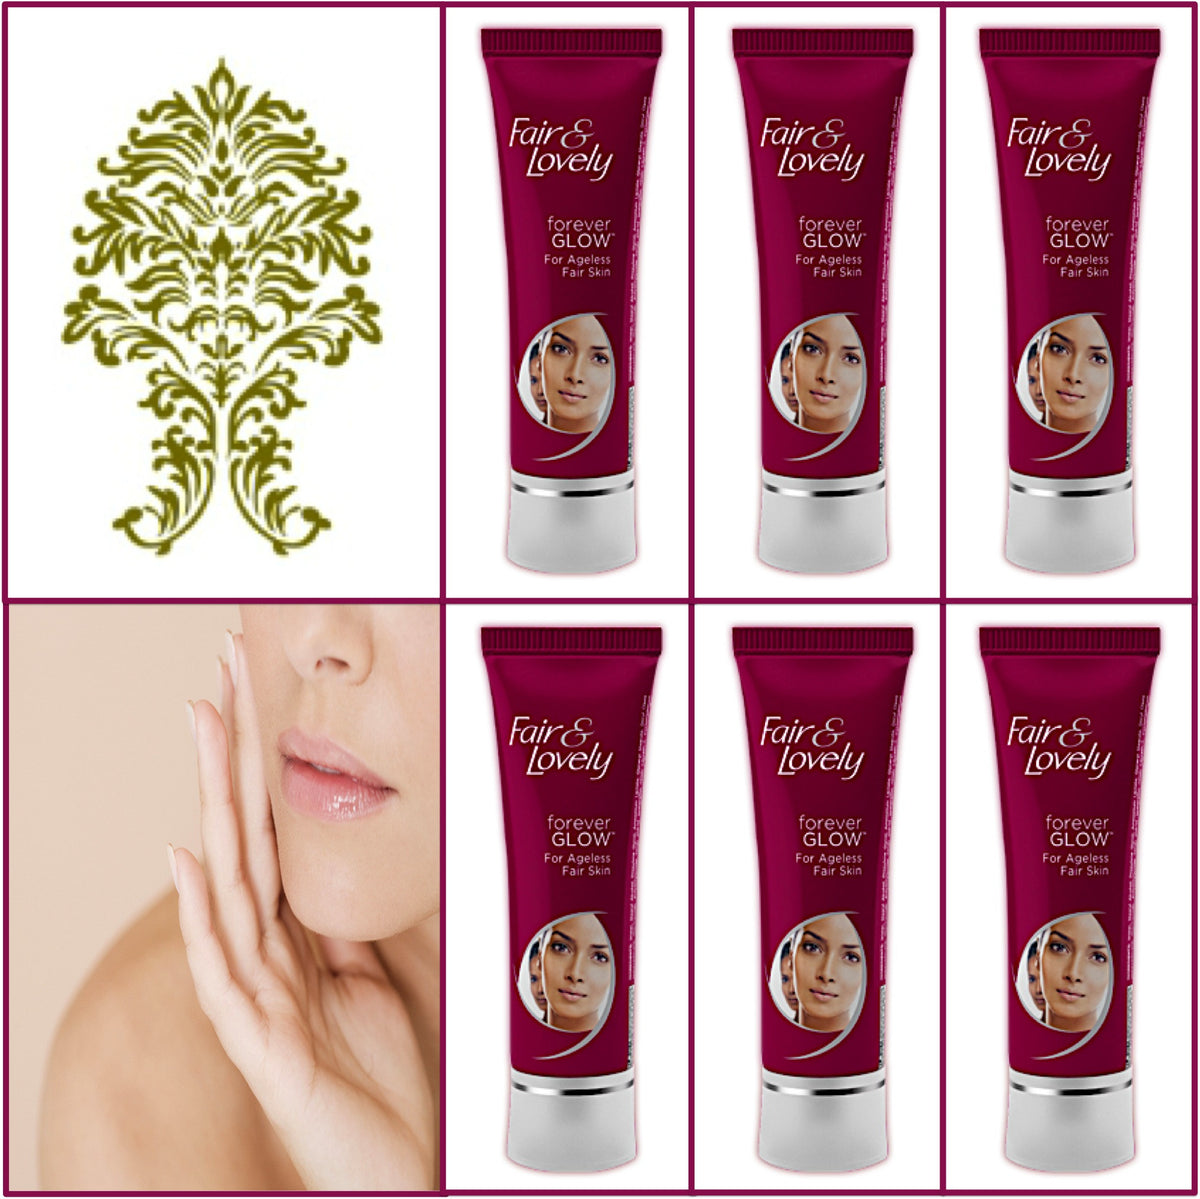 6 Pack Fair & Lovely Forever Glow Cream - Younger Looking Skin 50g Each